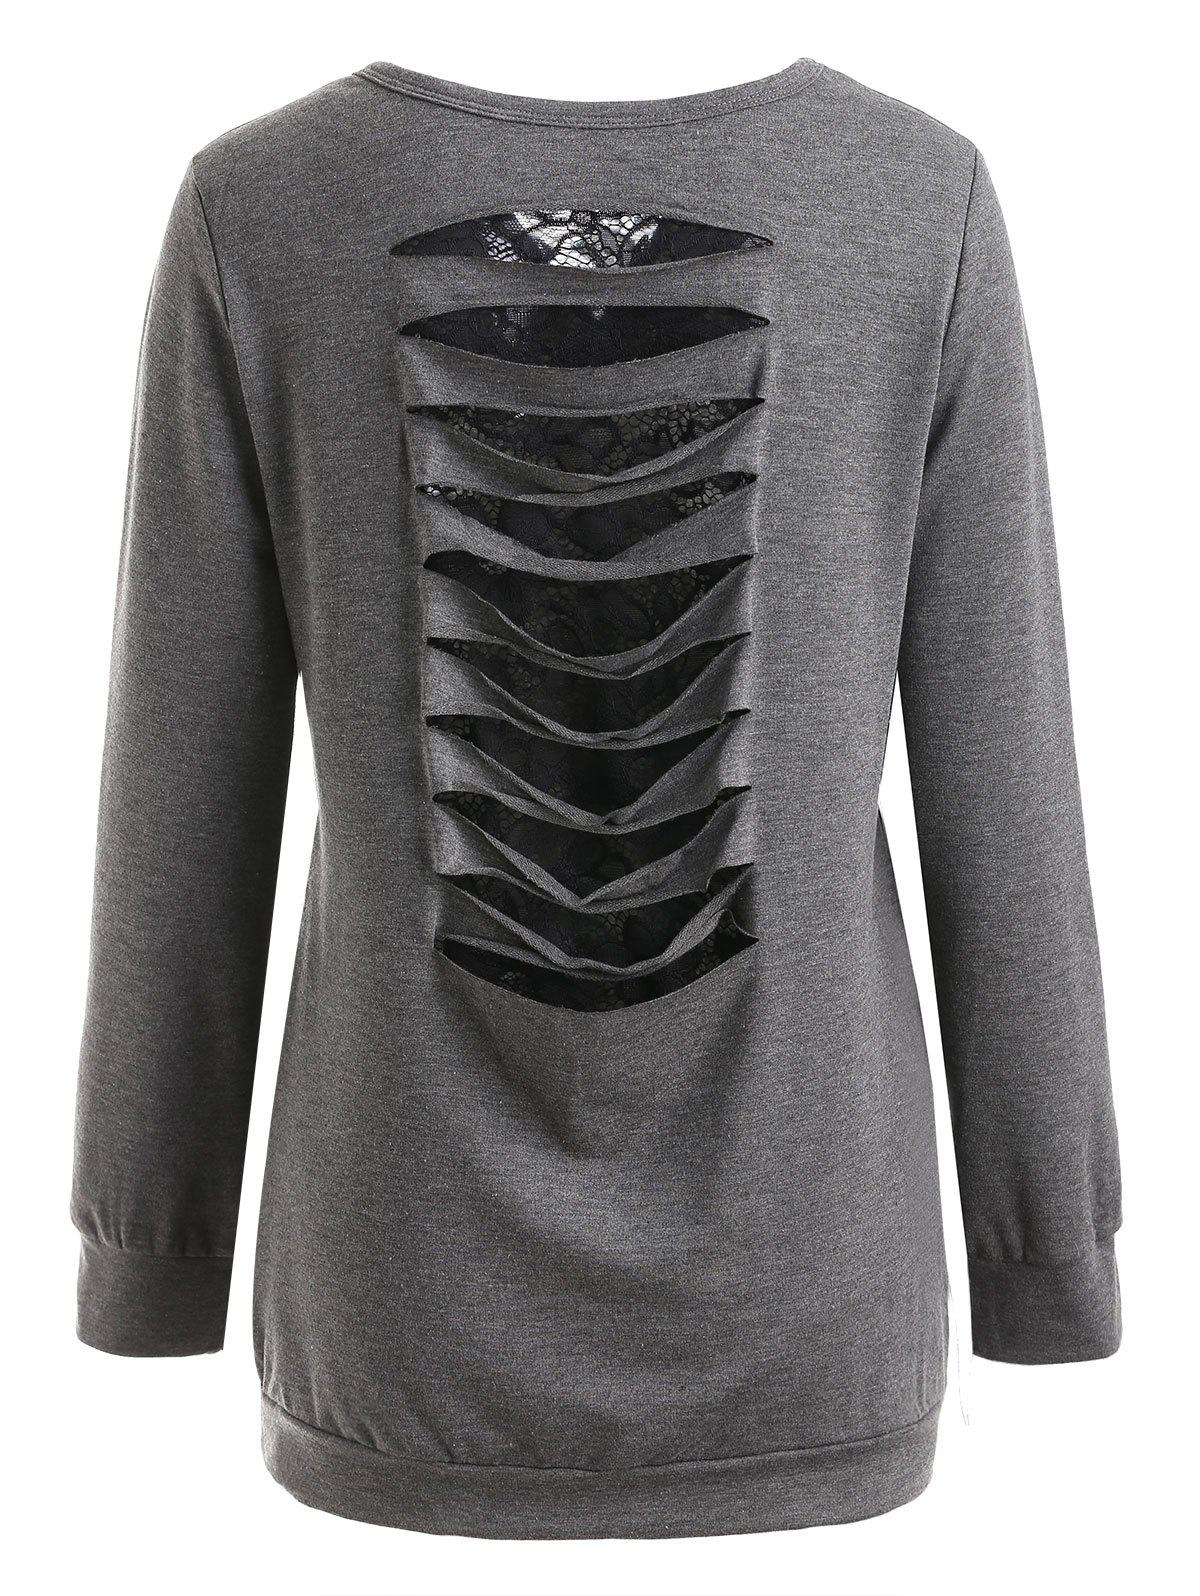 Fashion Lace Insert Ripped Sweatshirt